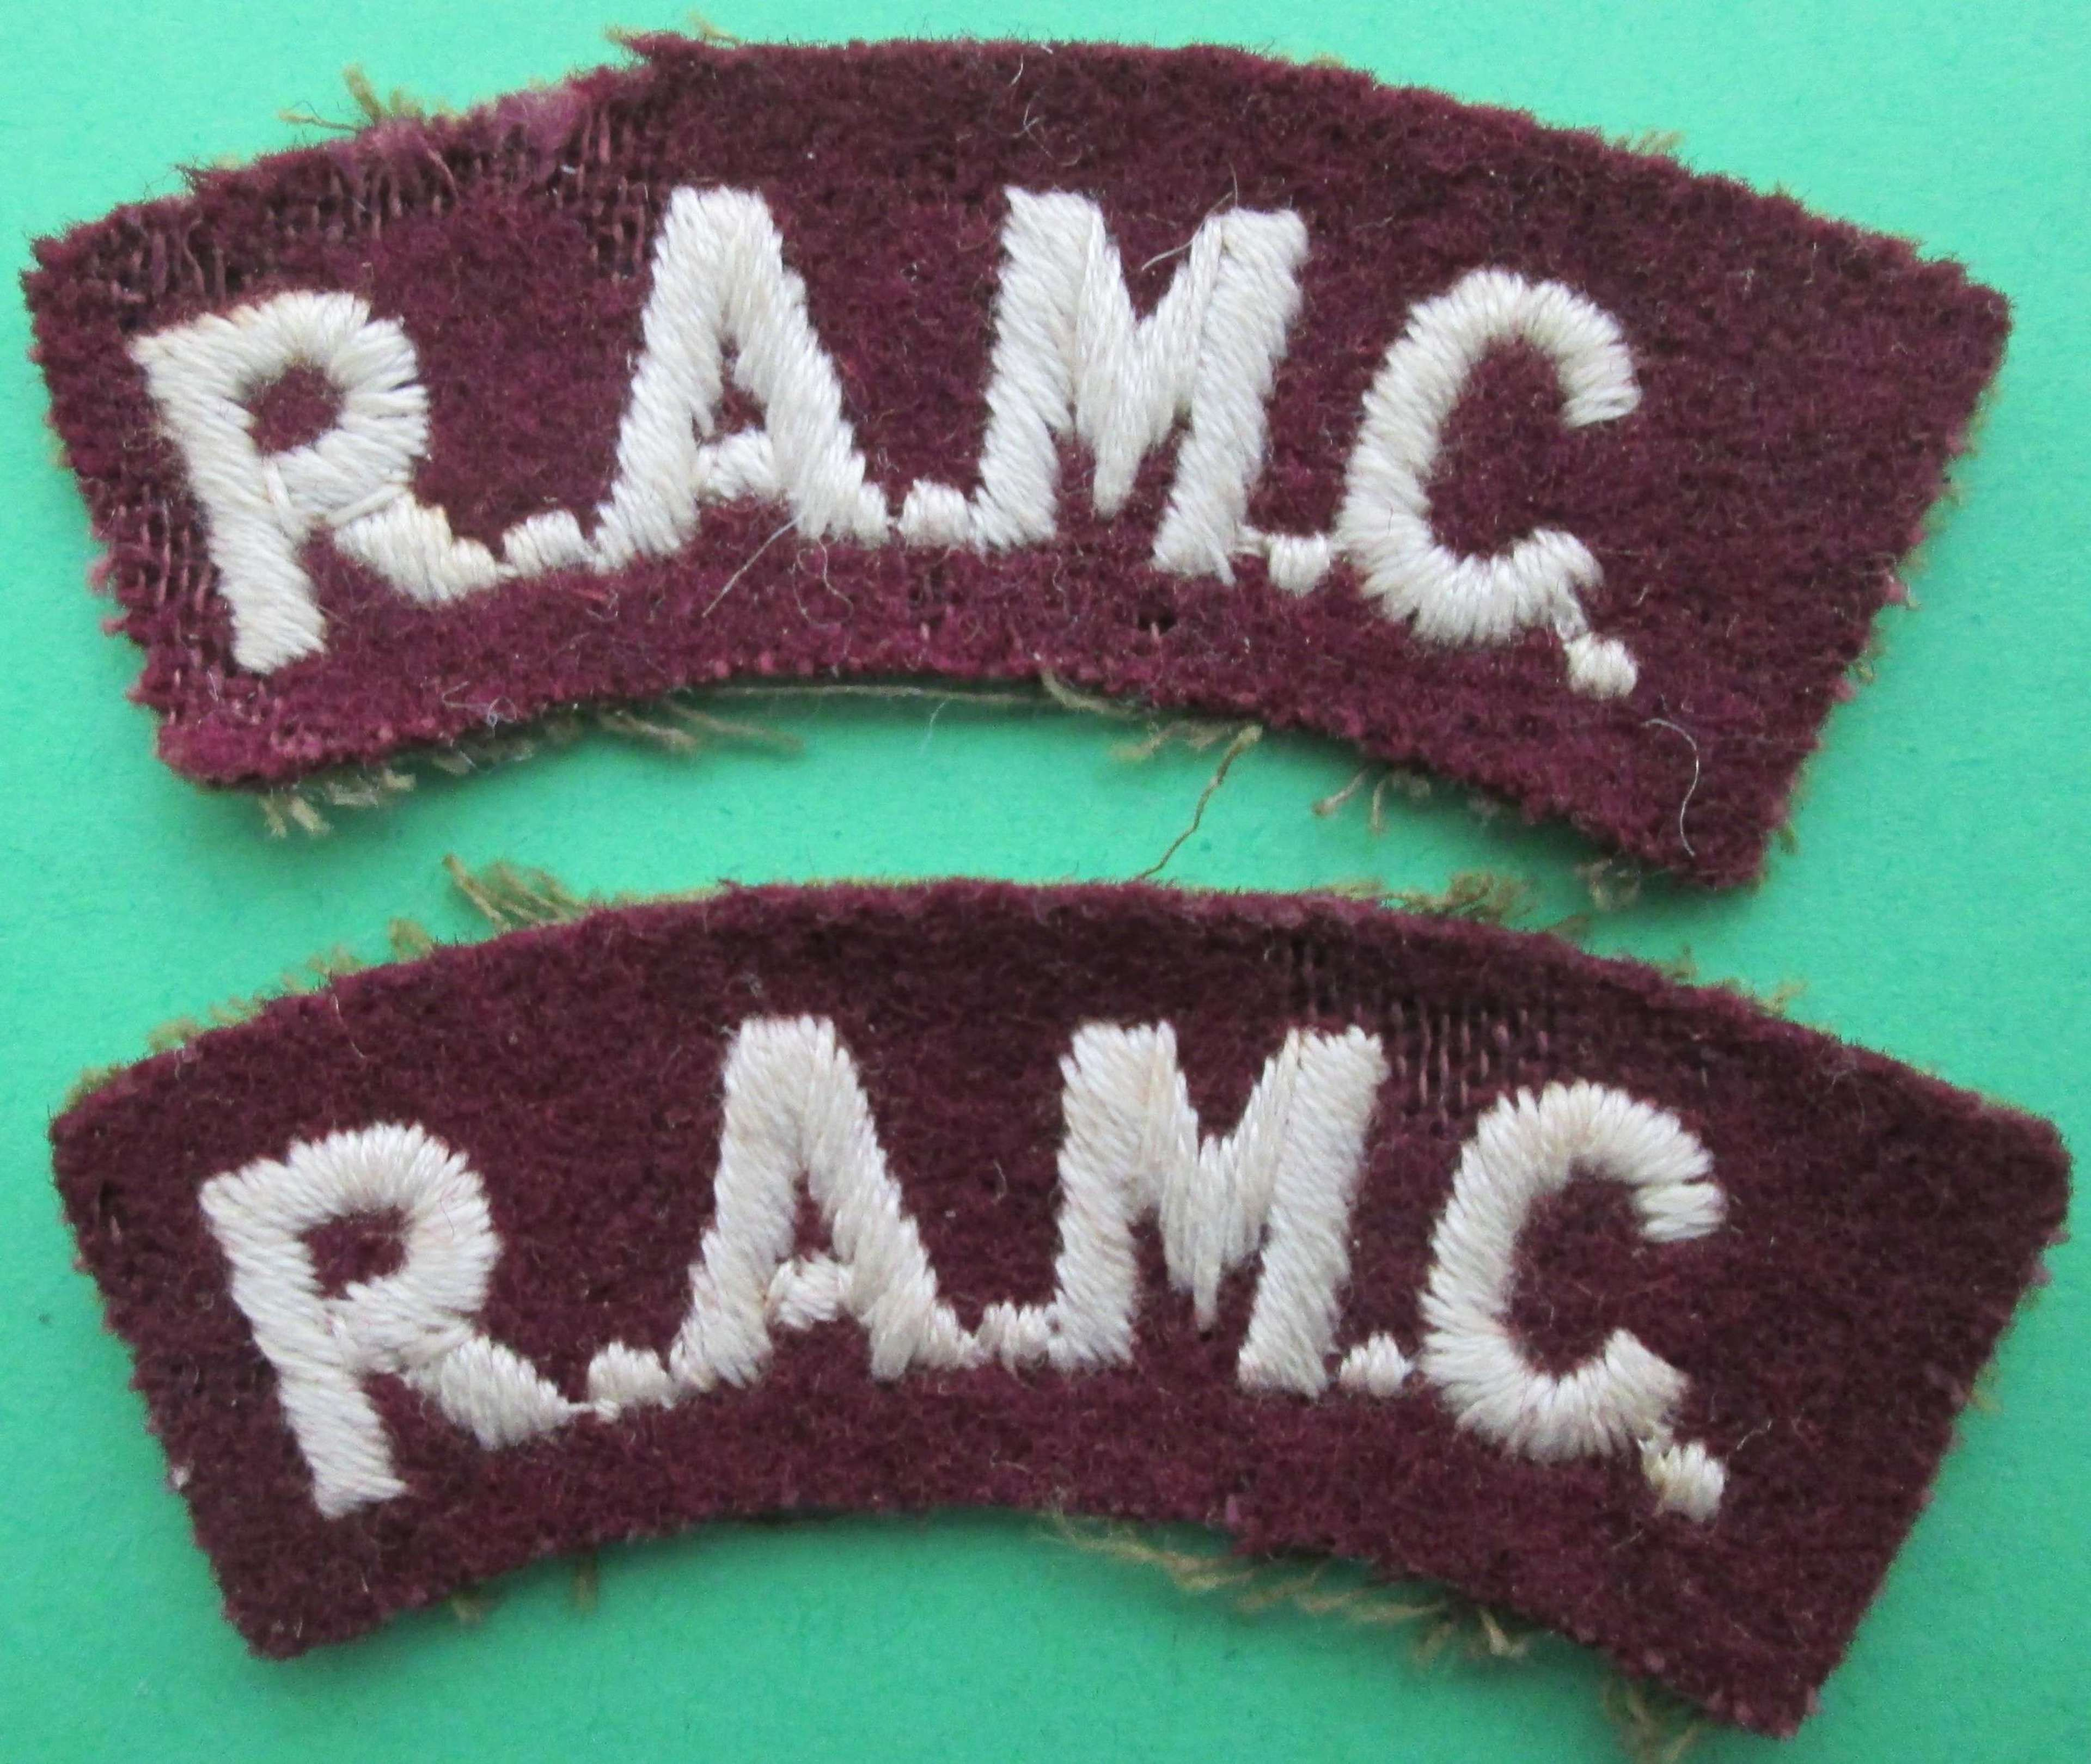 A PAIR OF ROYAL ARMY MEDICAL CORPS SHOULDER TITLES